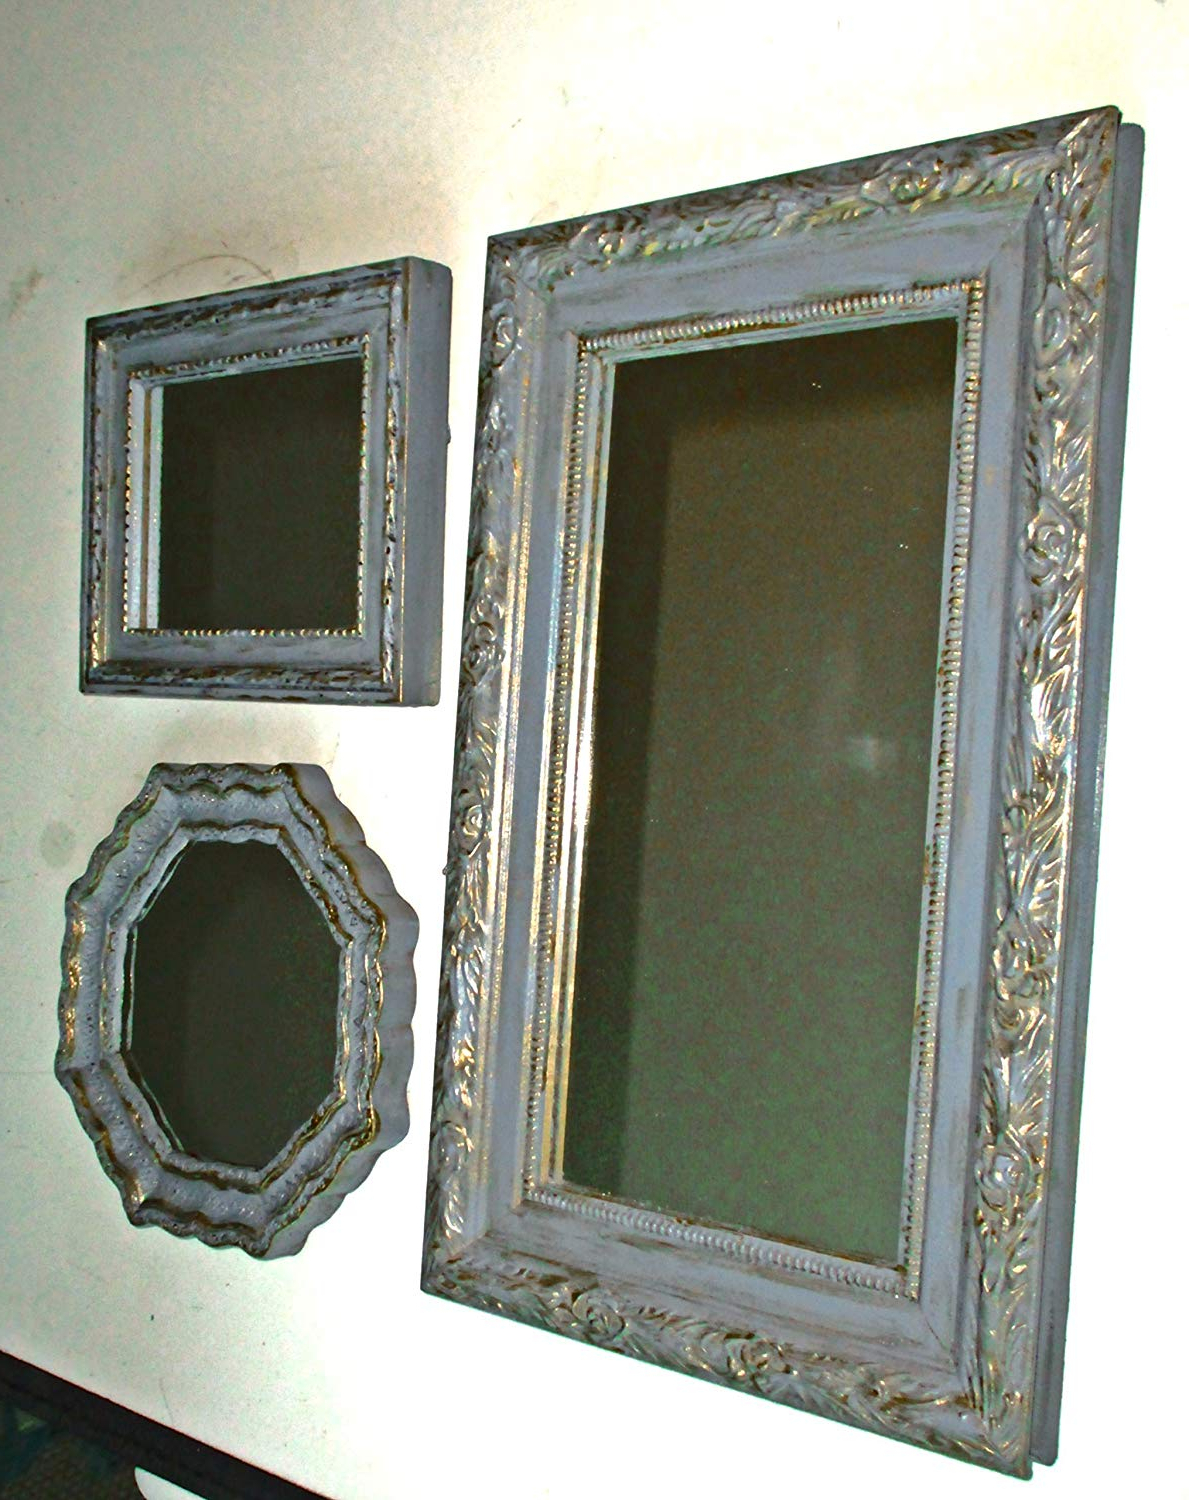 Popular Cheap Vintage Style Wall Mirrors, Find Vintage Style Wall Pertaining To Vintage Style Wall Mirrors (View 17 of 20)